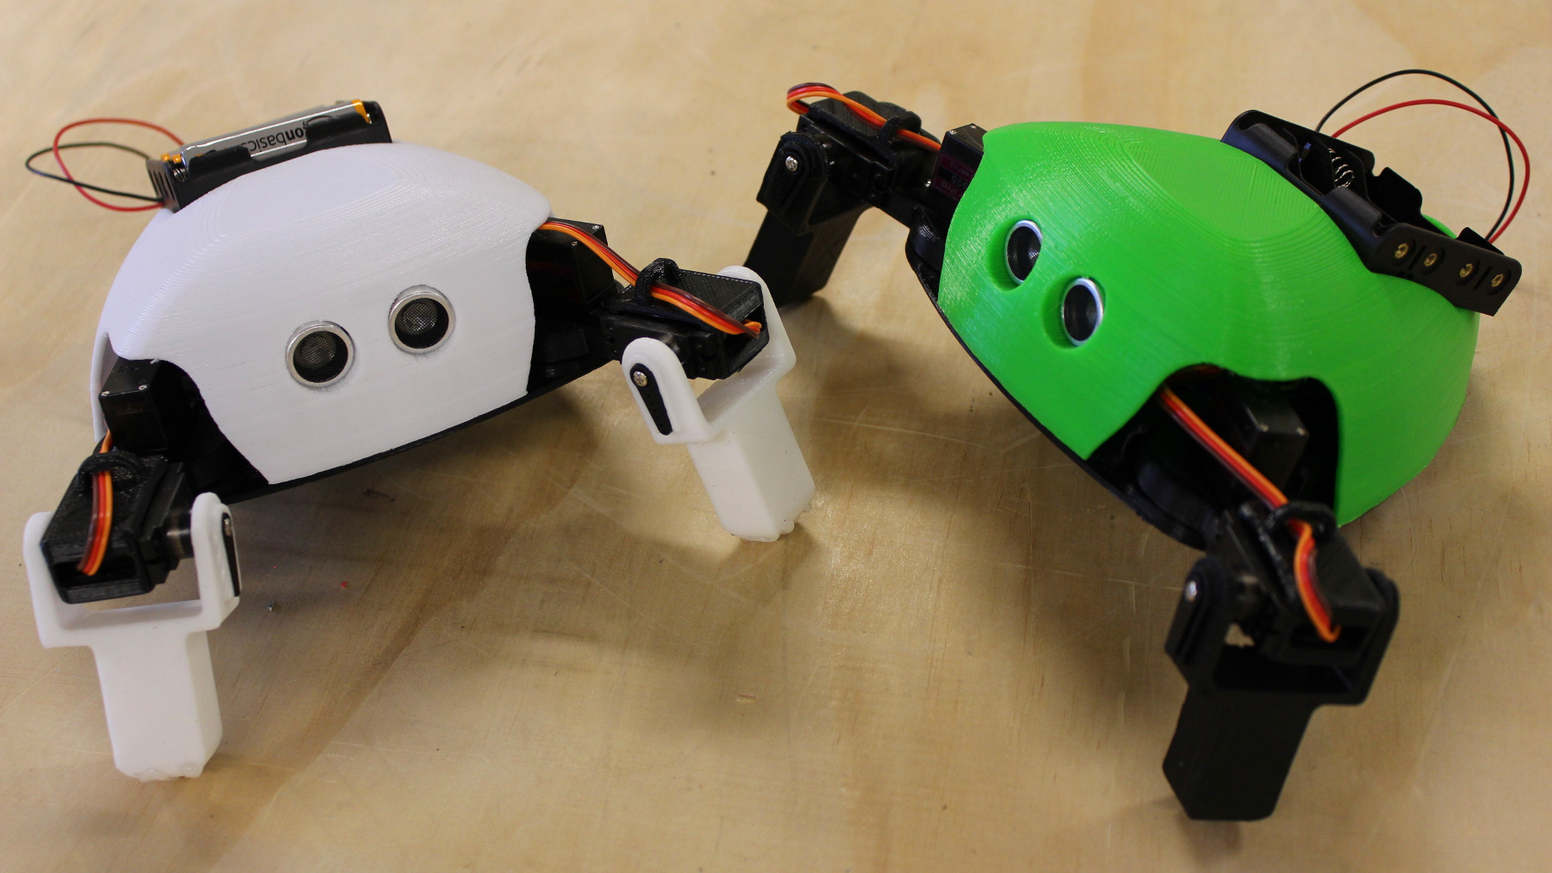 The Critter is for beginner robot builders to learn coding and 3D Printing on a robot that is different from anything they've seen.